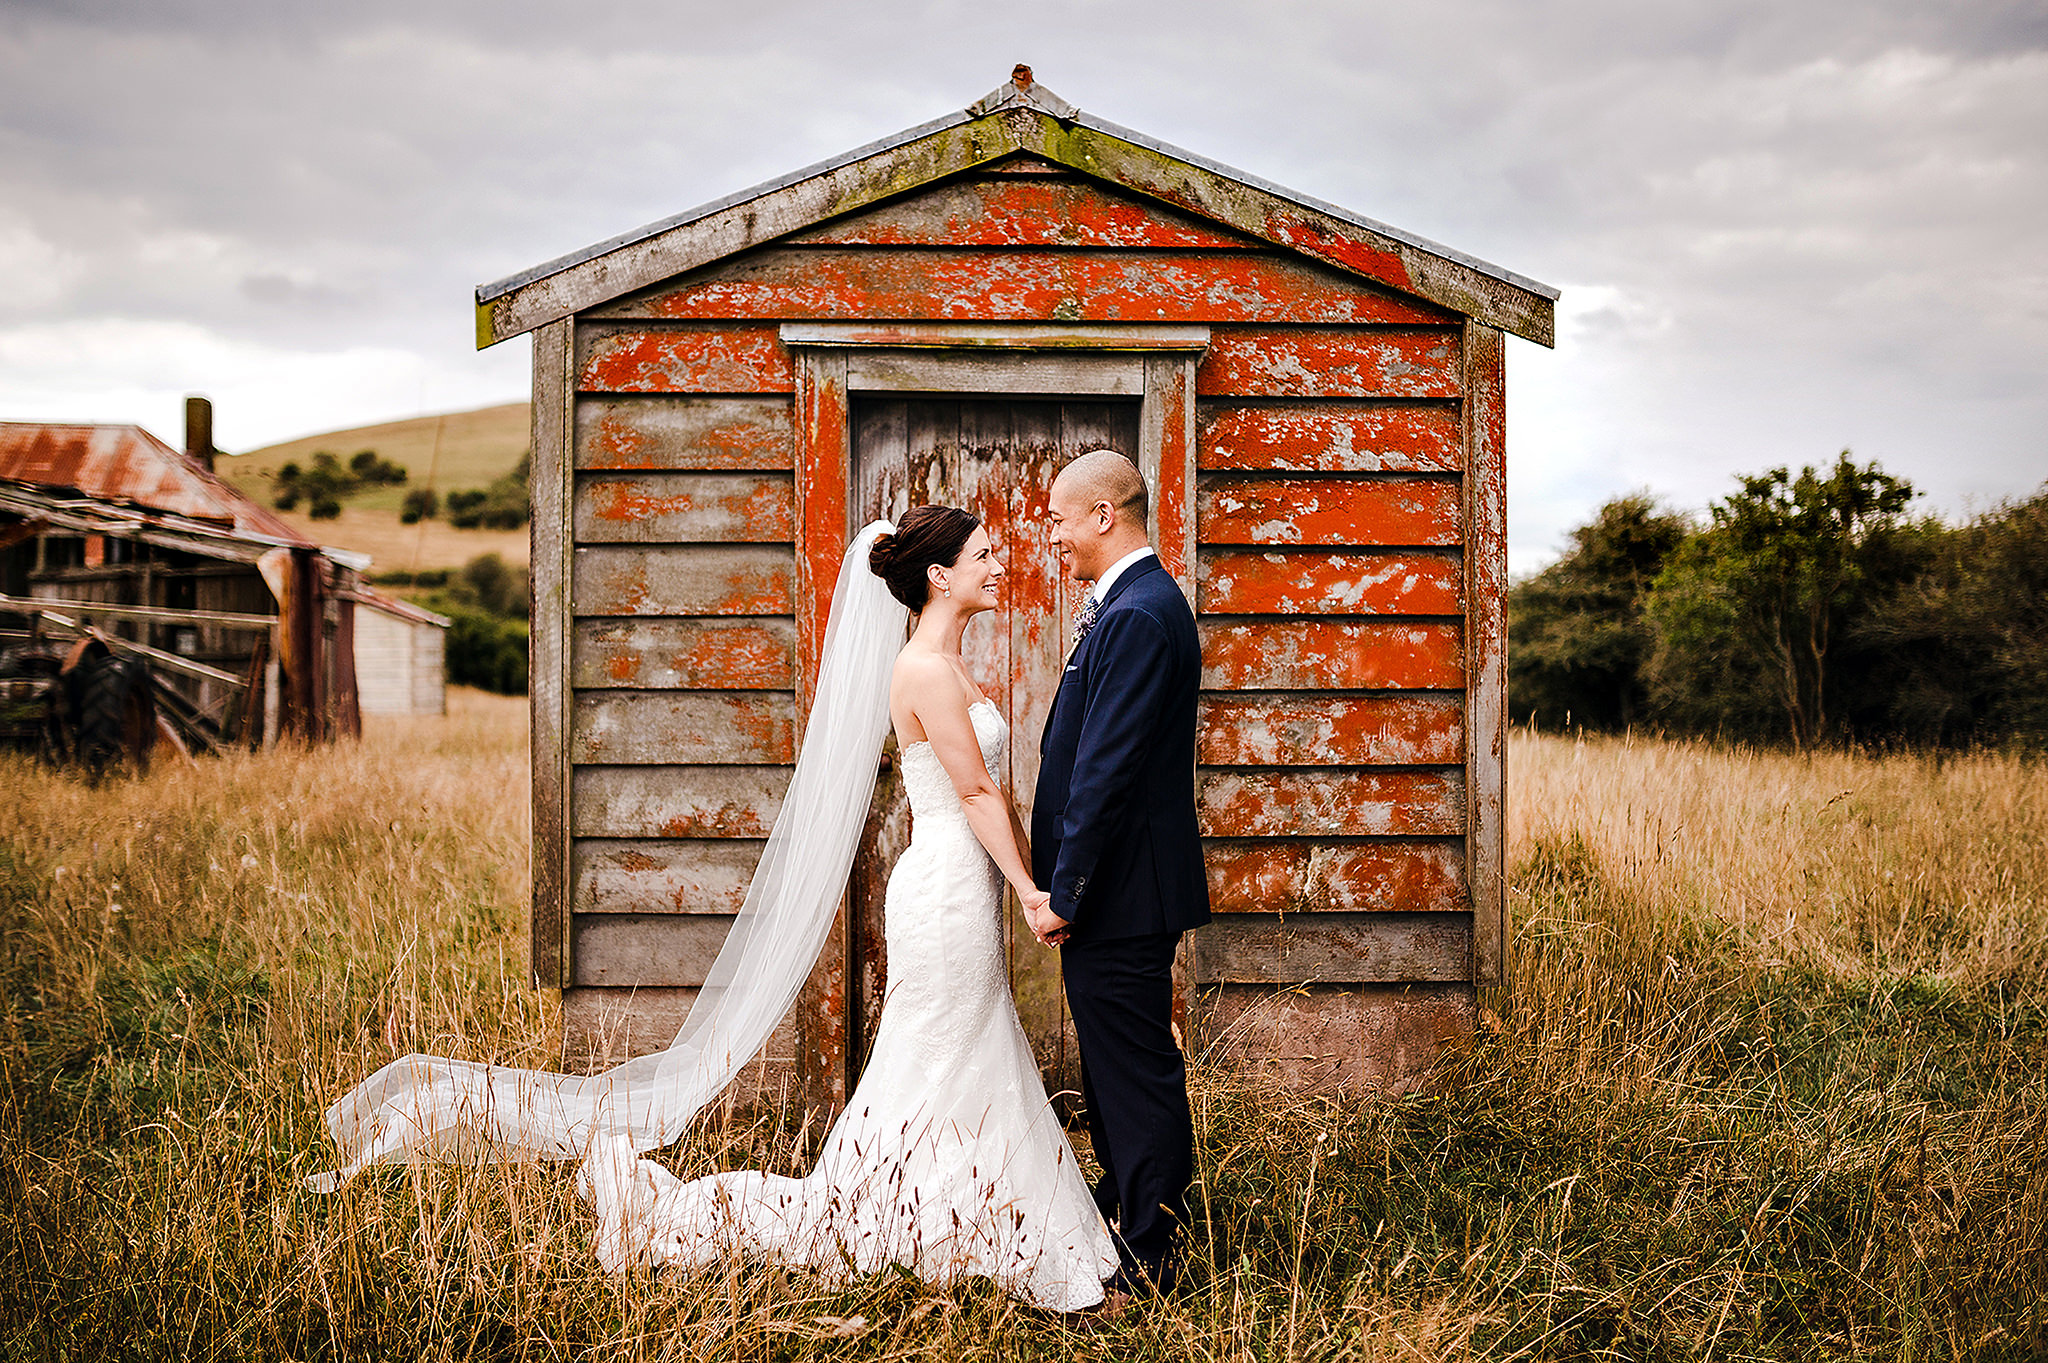 61 wedding couple in front of red barn auckland.JPG